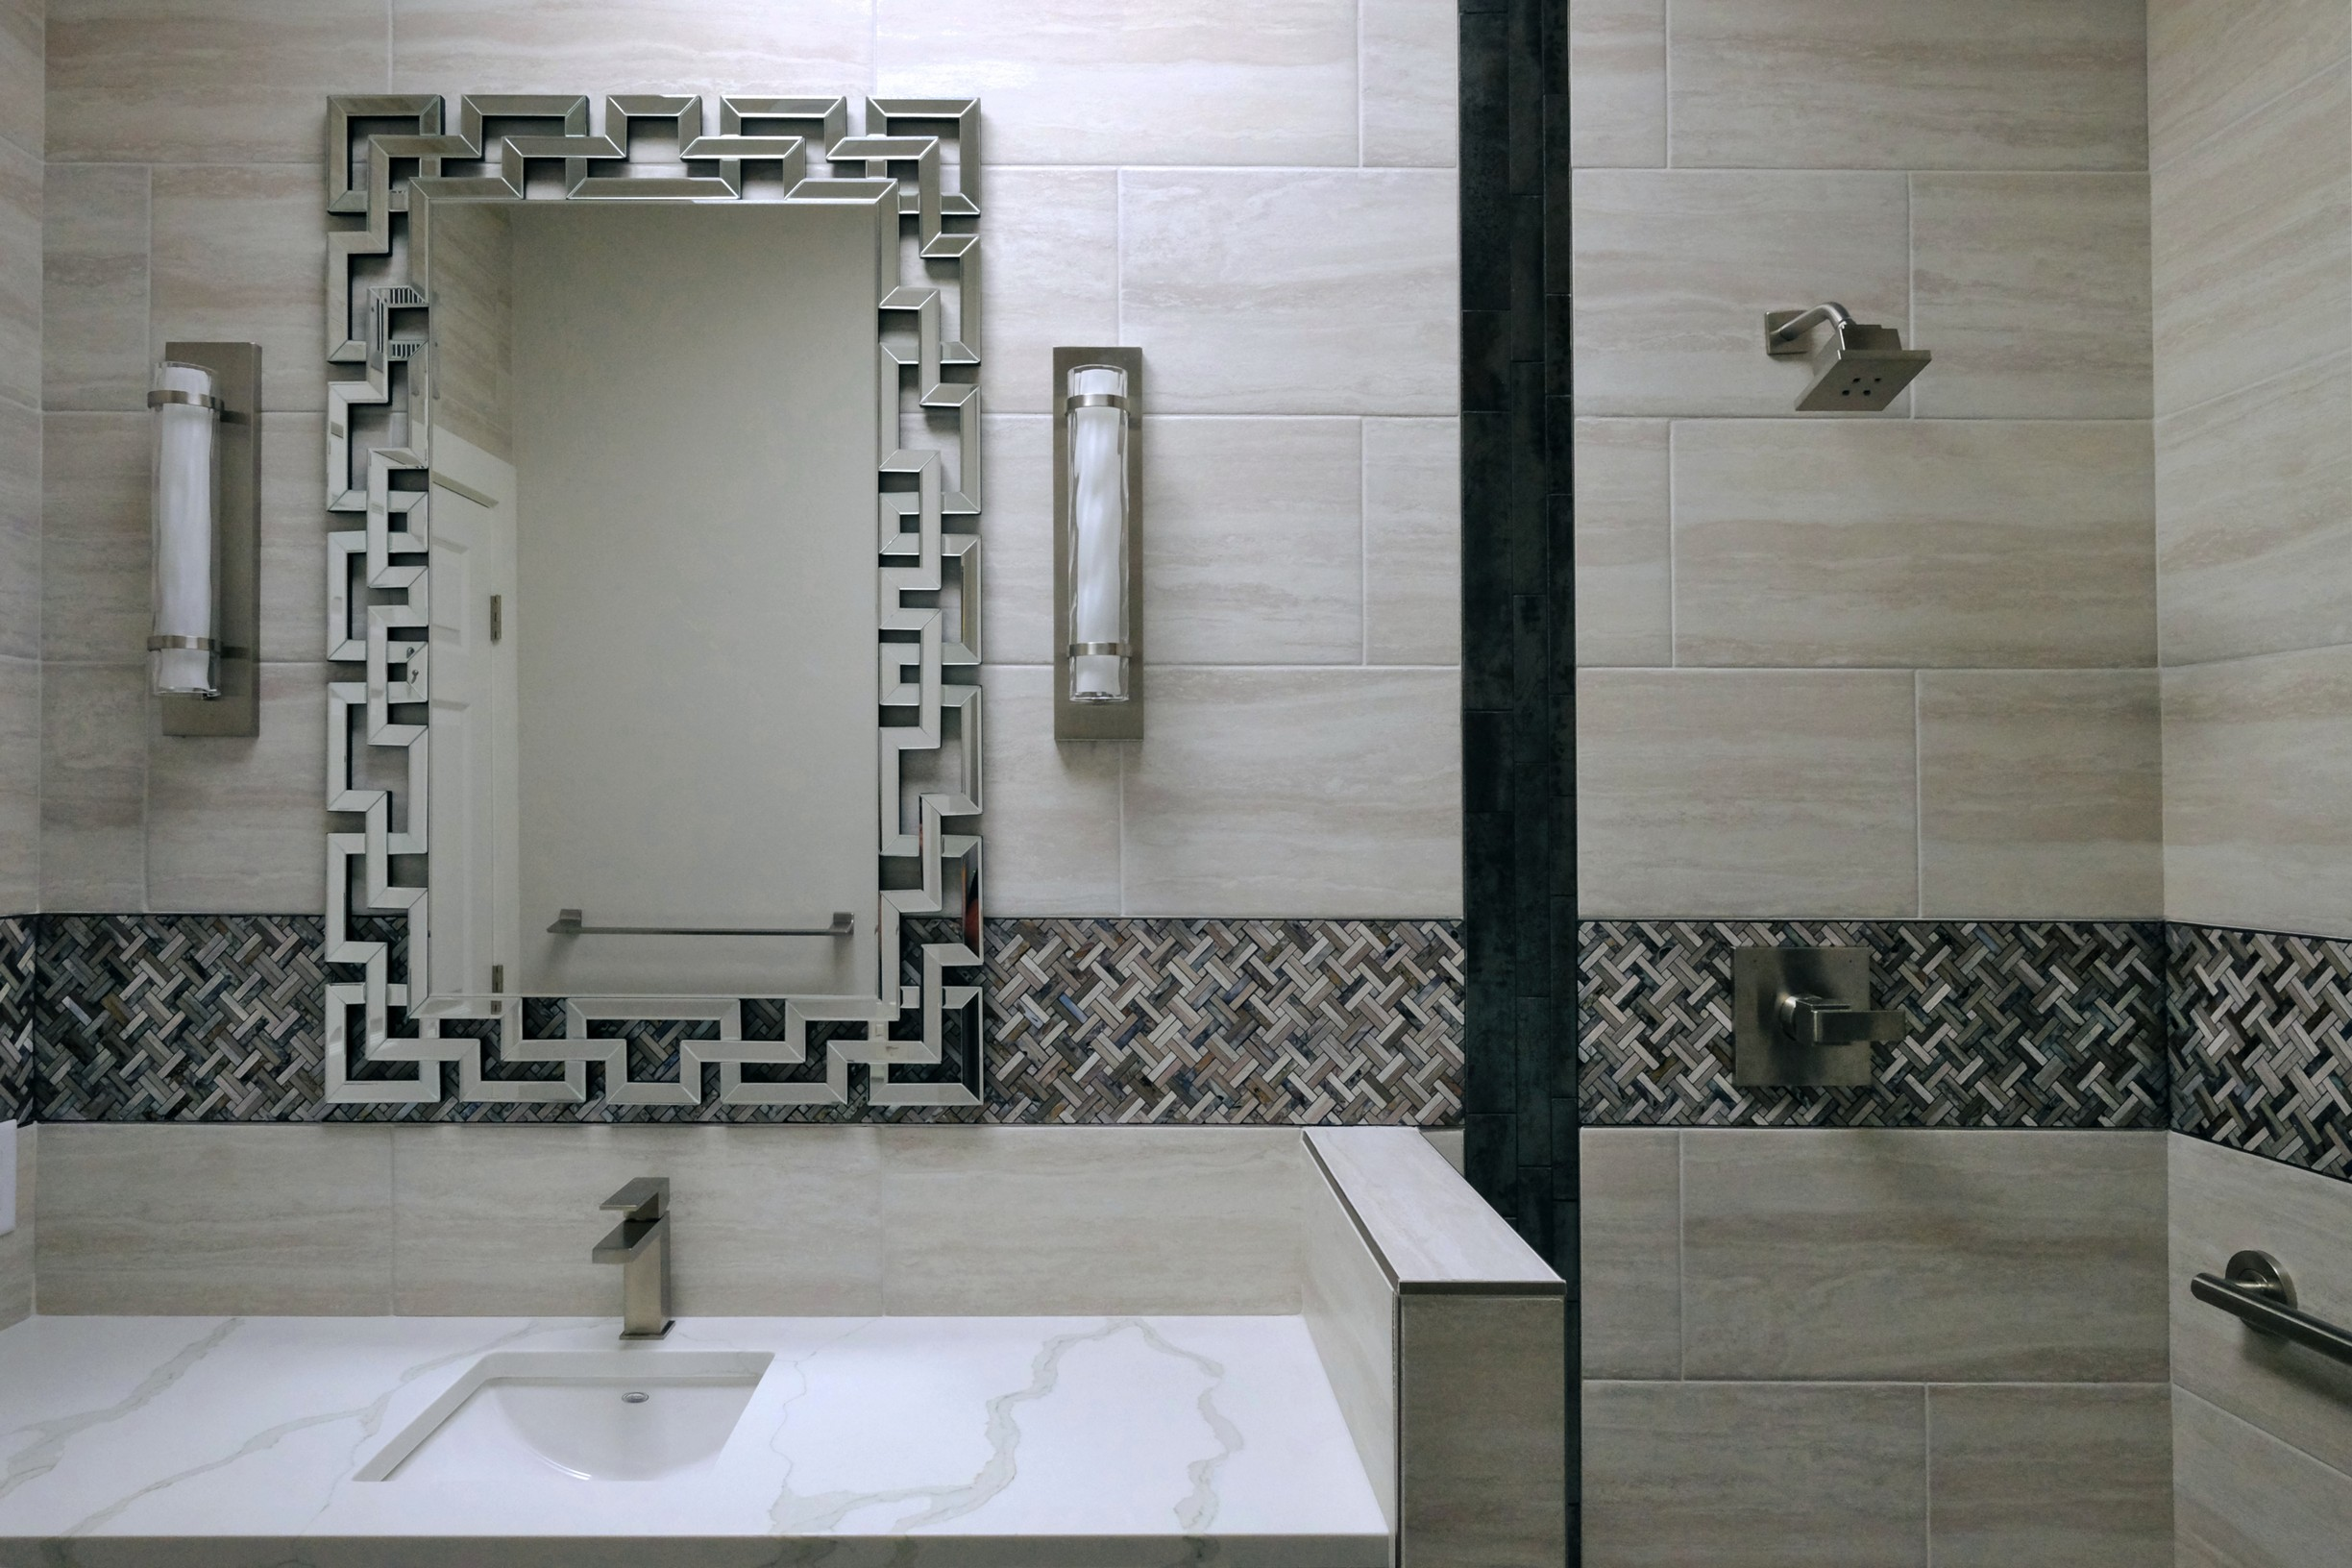 Glamourous modern bathroom design and remodel featuring Hollywood glam mirror and Art Deco tile pattern in Tucson.